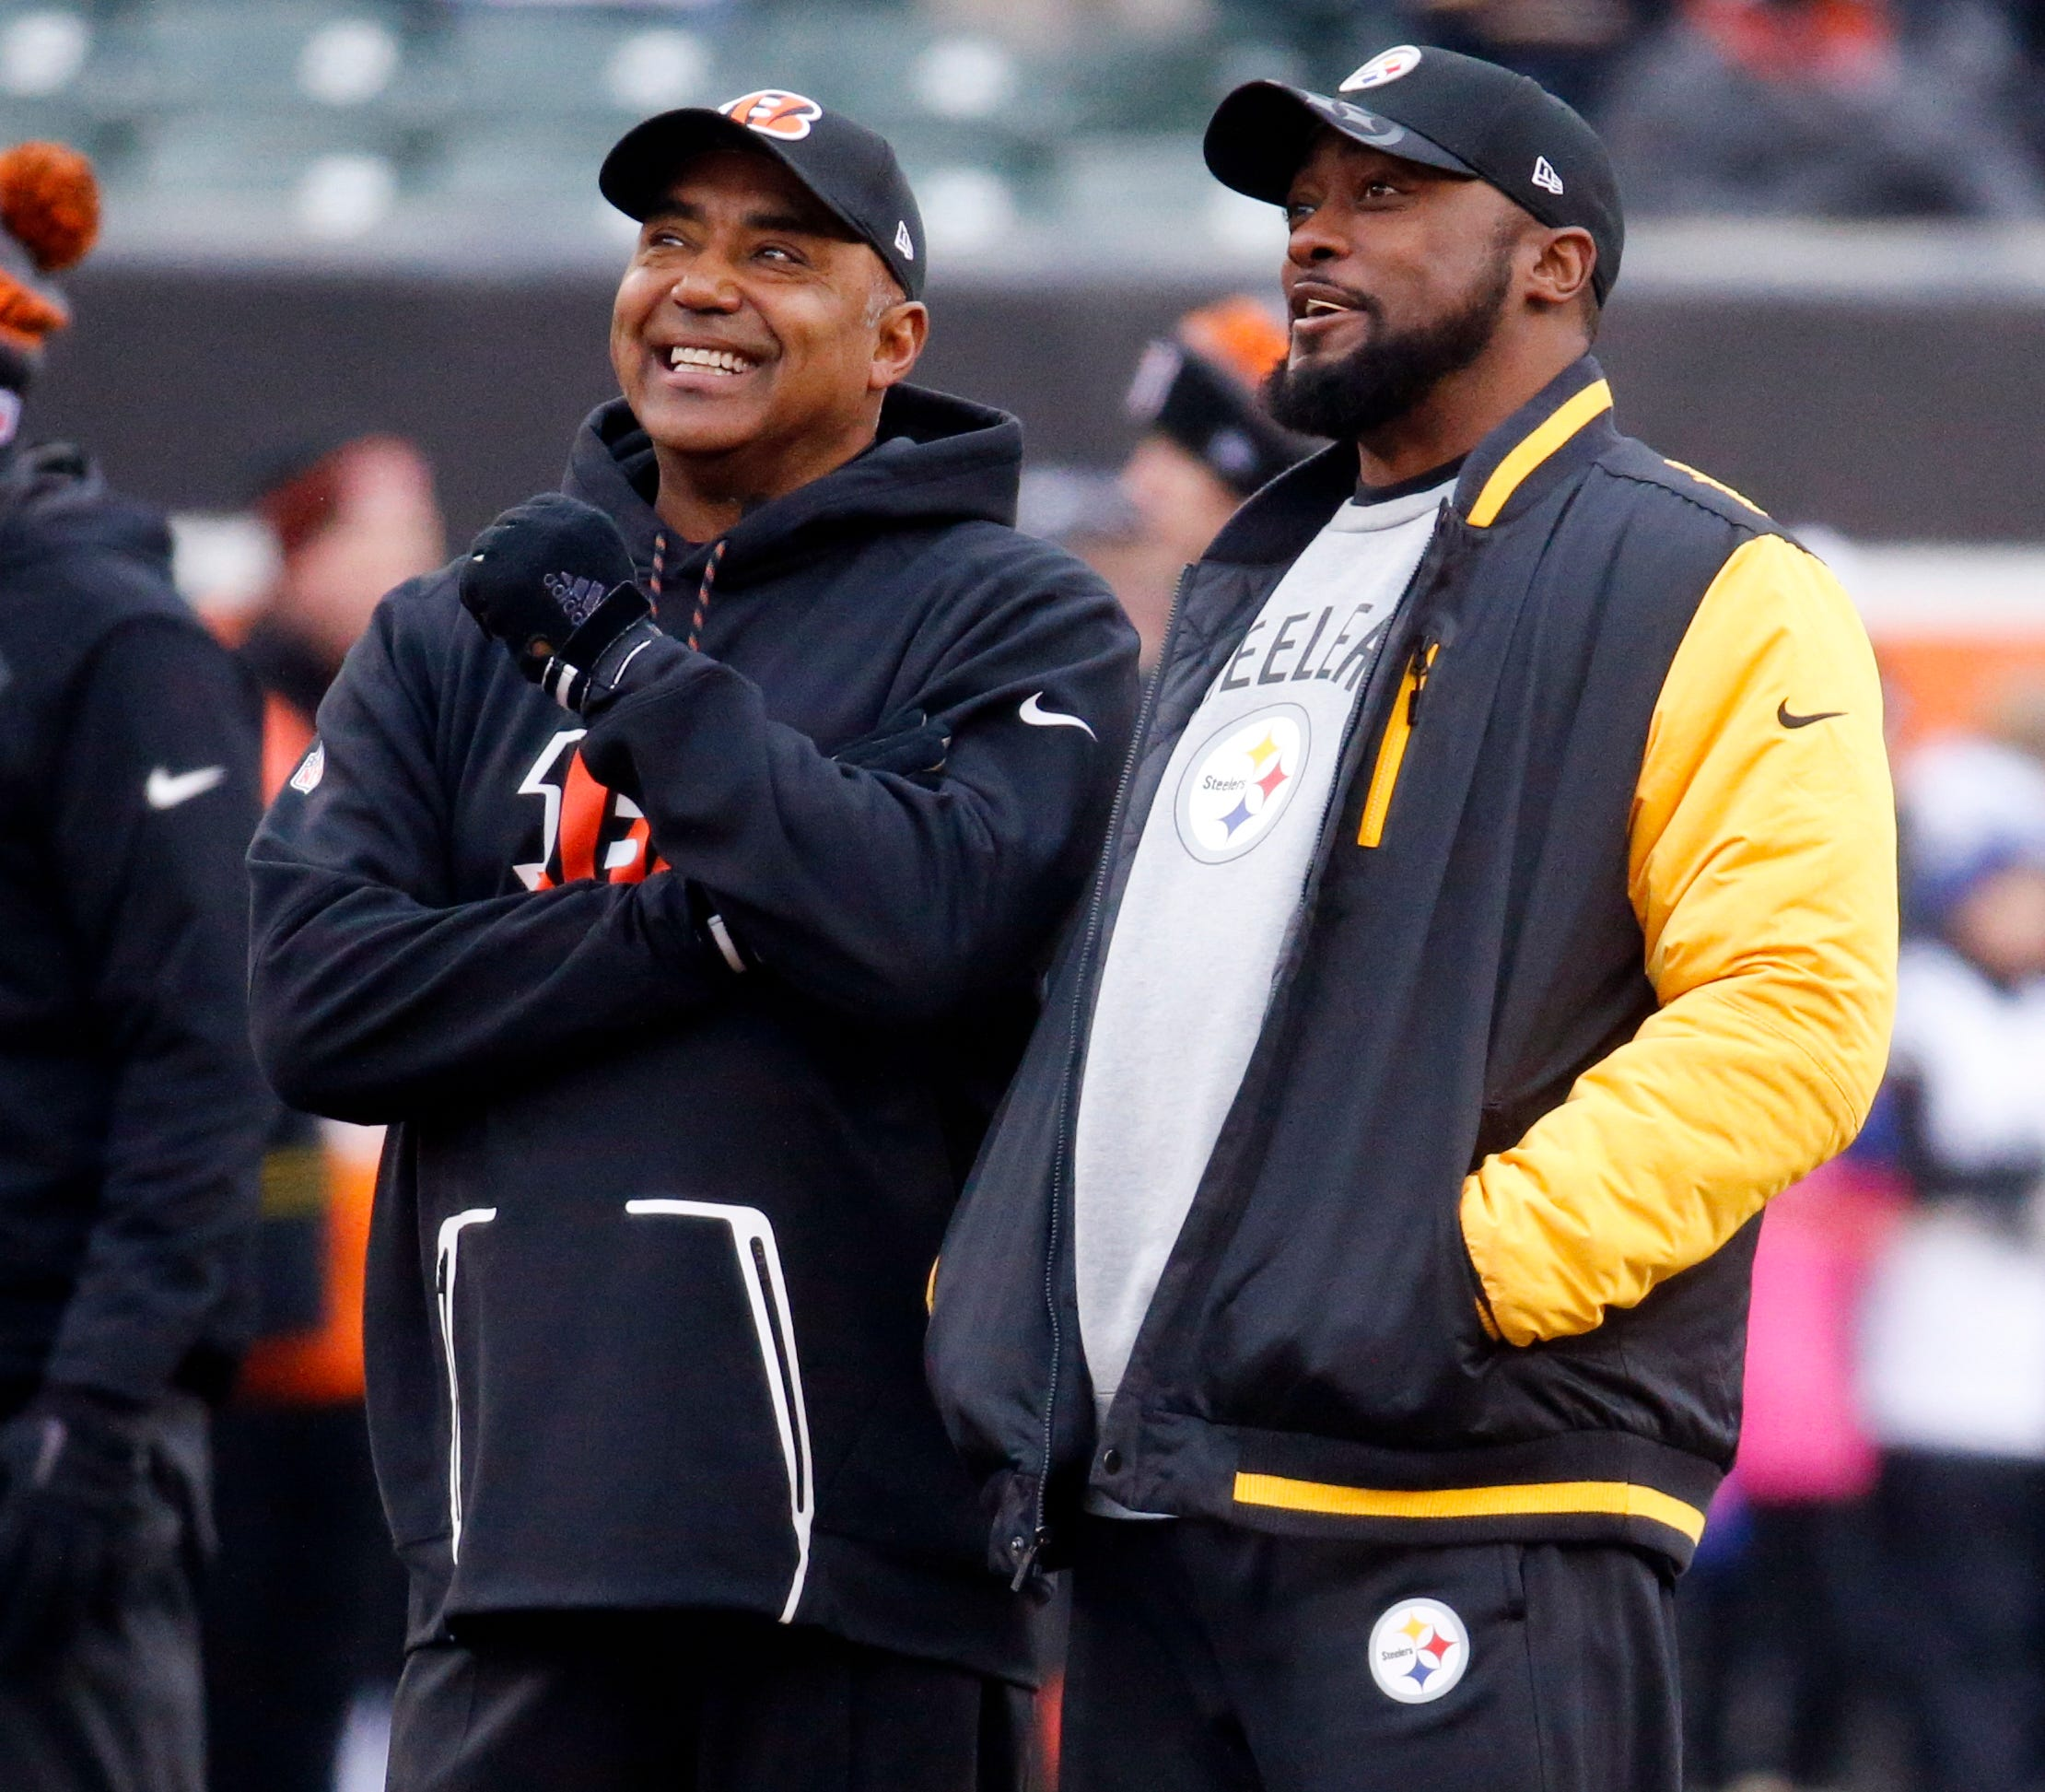 Beyond the Rooney Rule: NFLPA wants to improve landscape for minority candidates